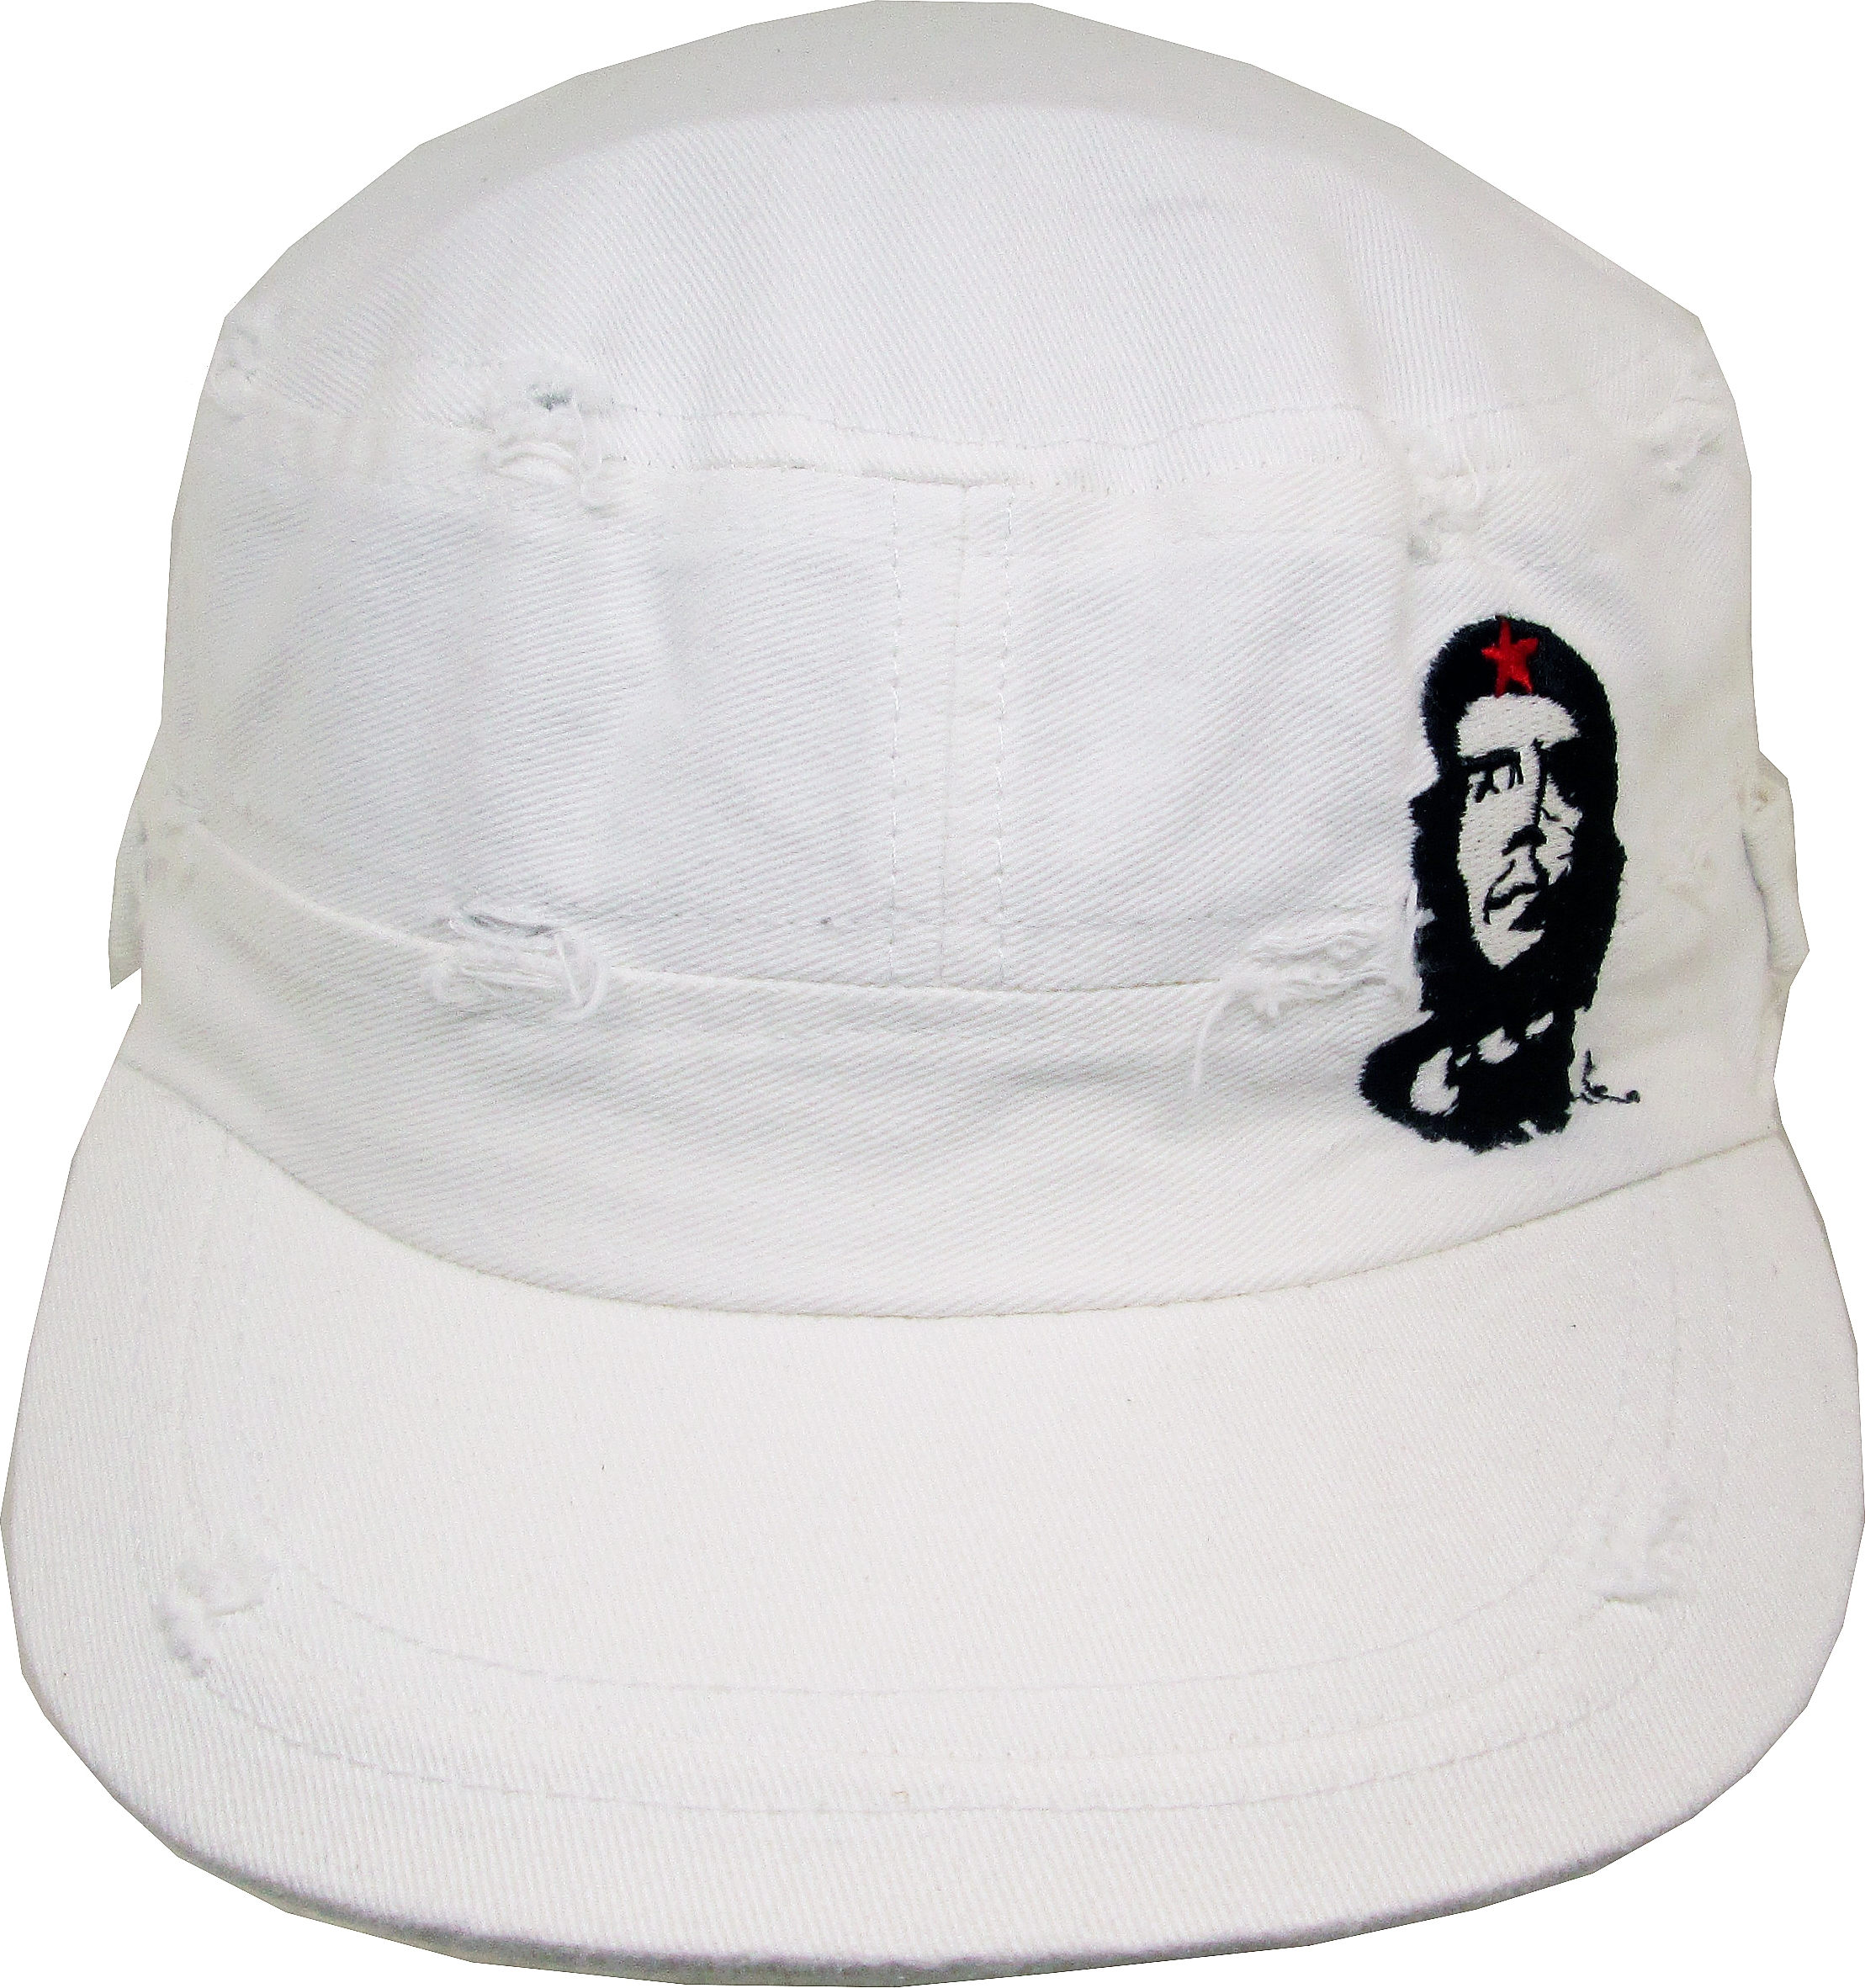 bd5ffcaa931 Che guevara red star distressed baseball hat ebay jpg 2217x2363 Che hat